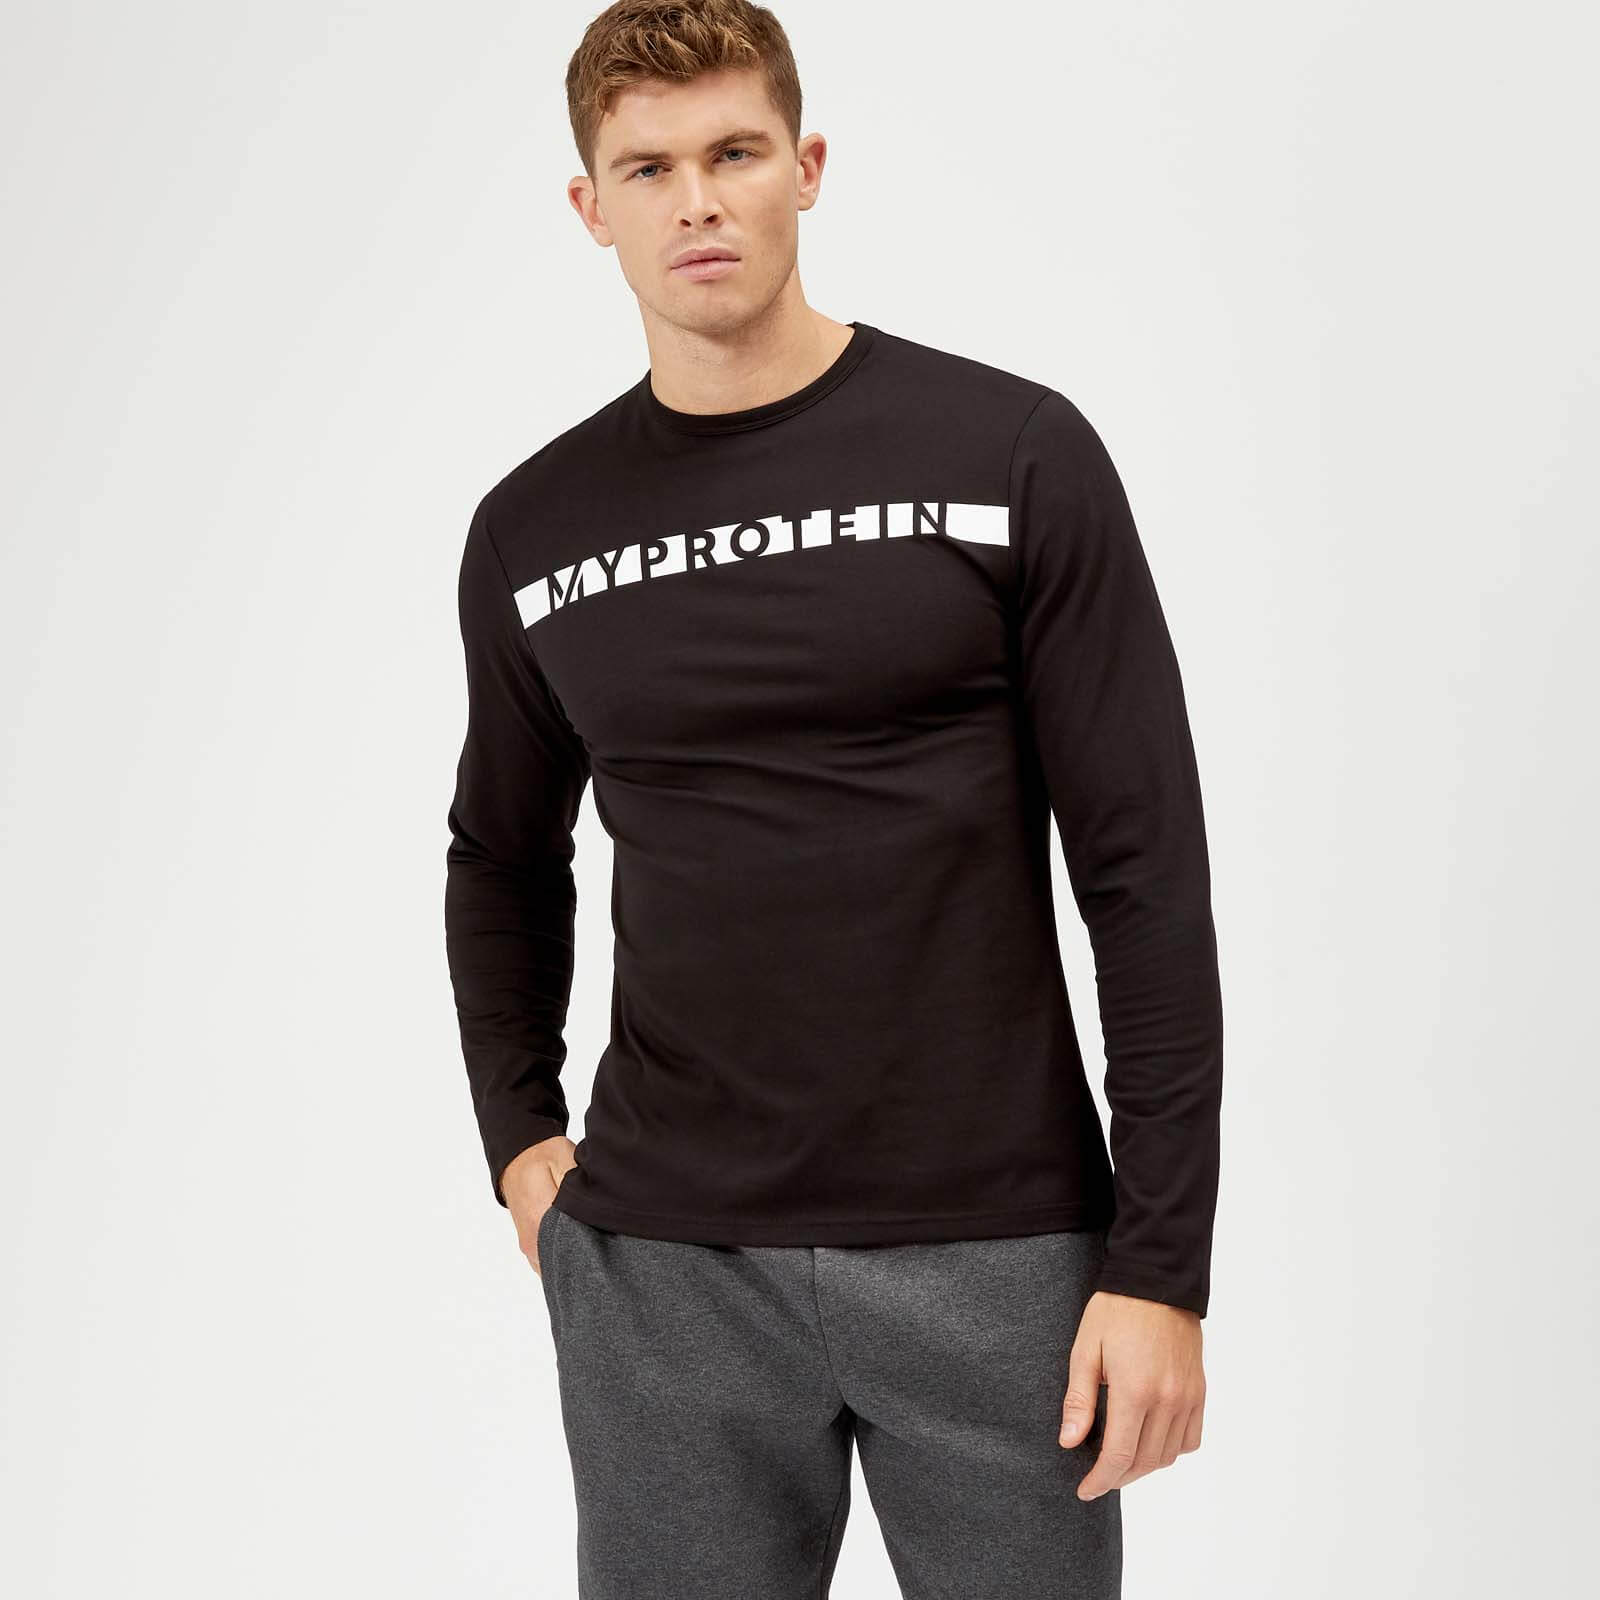 Myprotein The Original Long-Sleeve T-Shirt - Svart - S